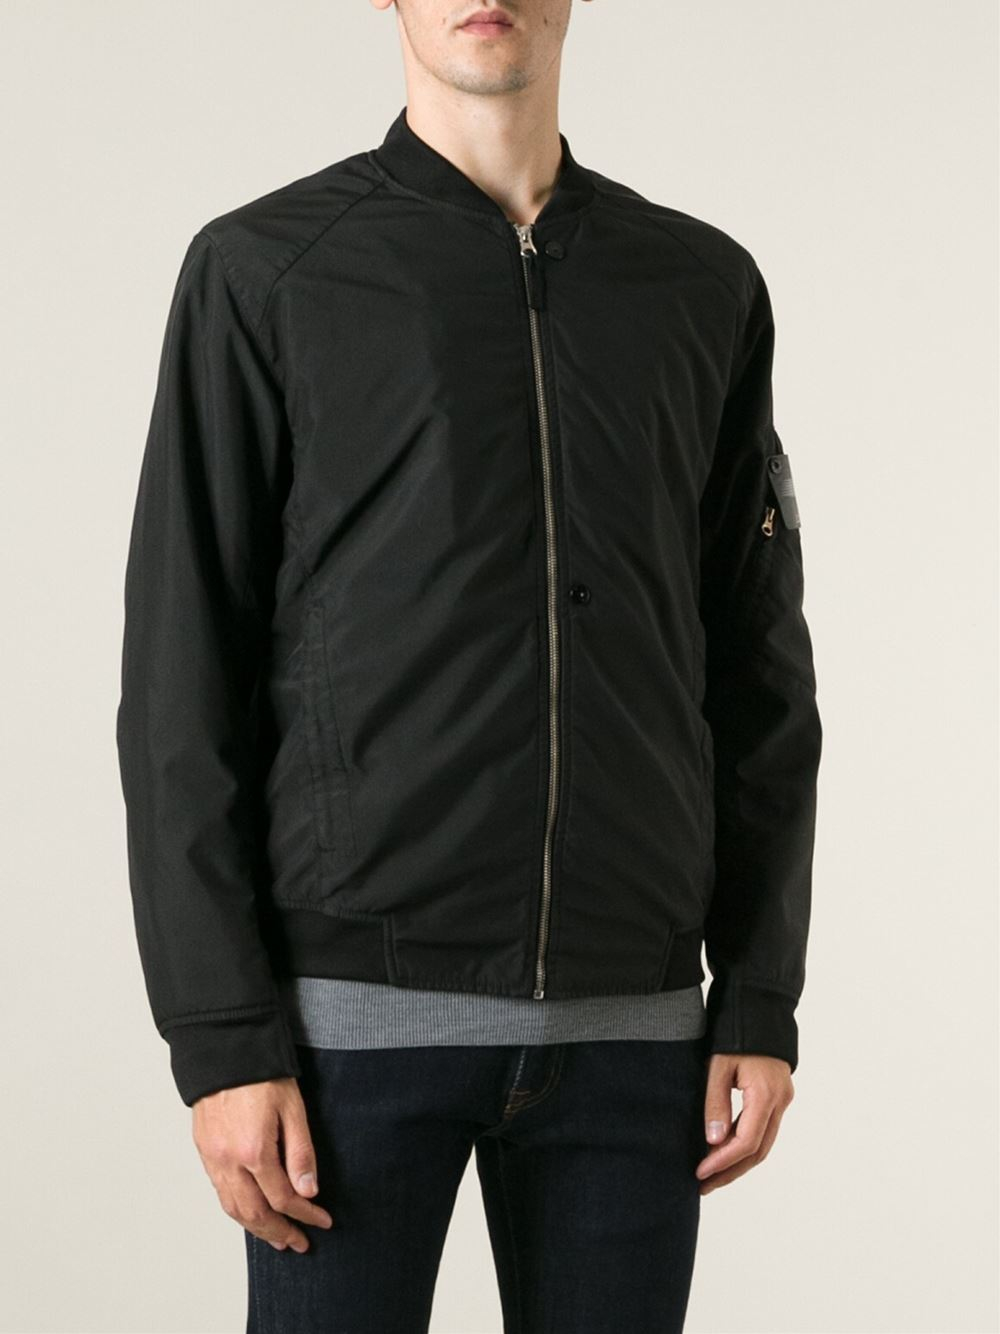 Stone island Fitted Bomber Jacket in Black for Men | Lyst